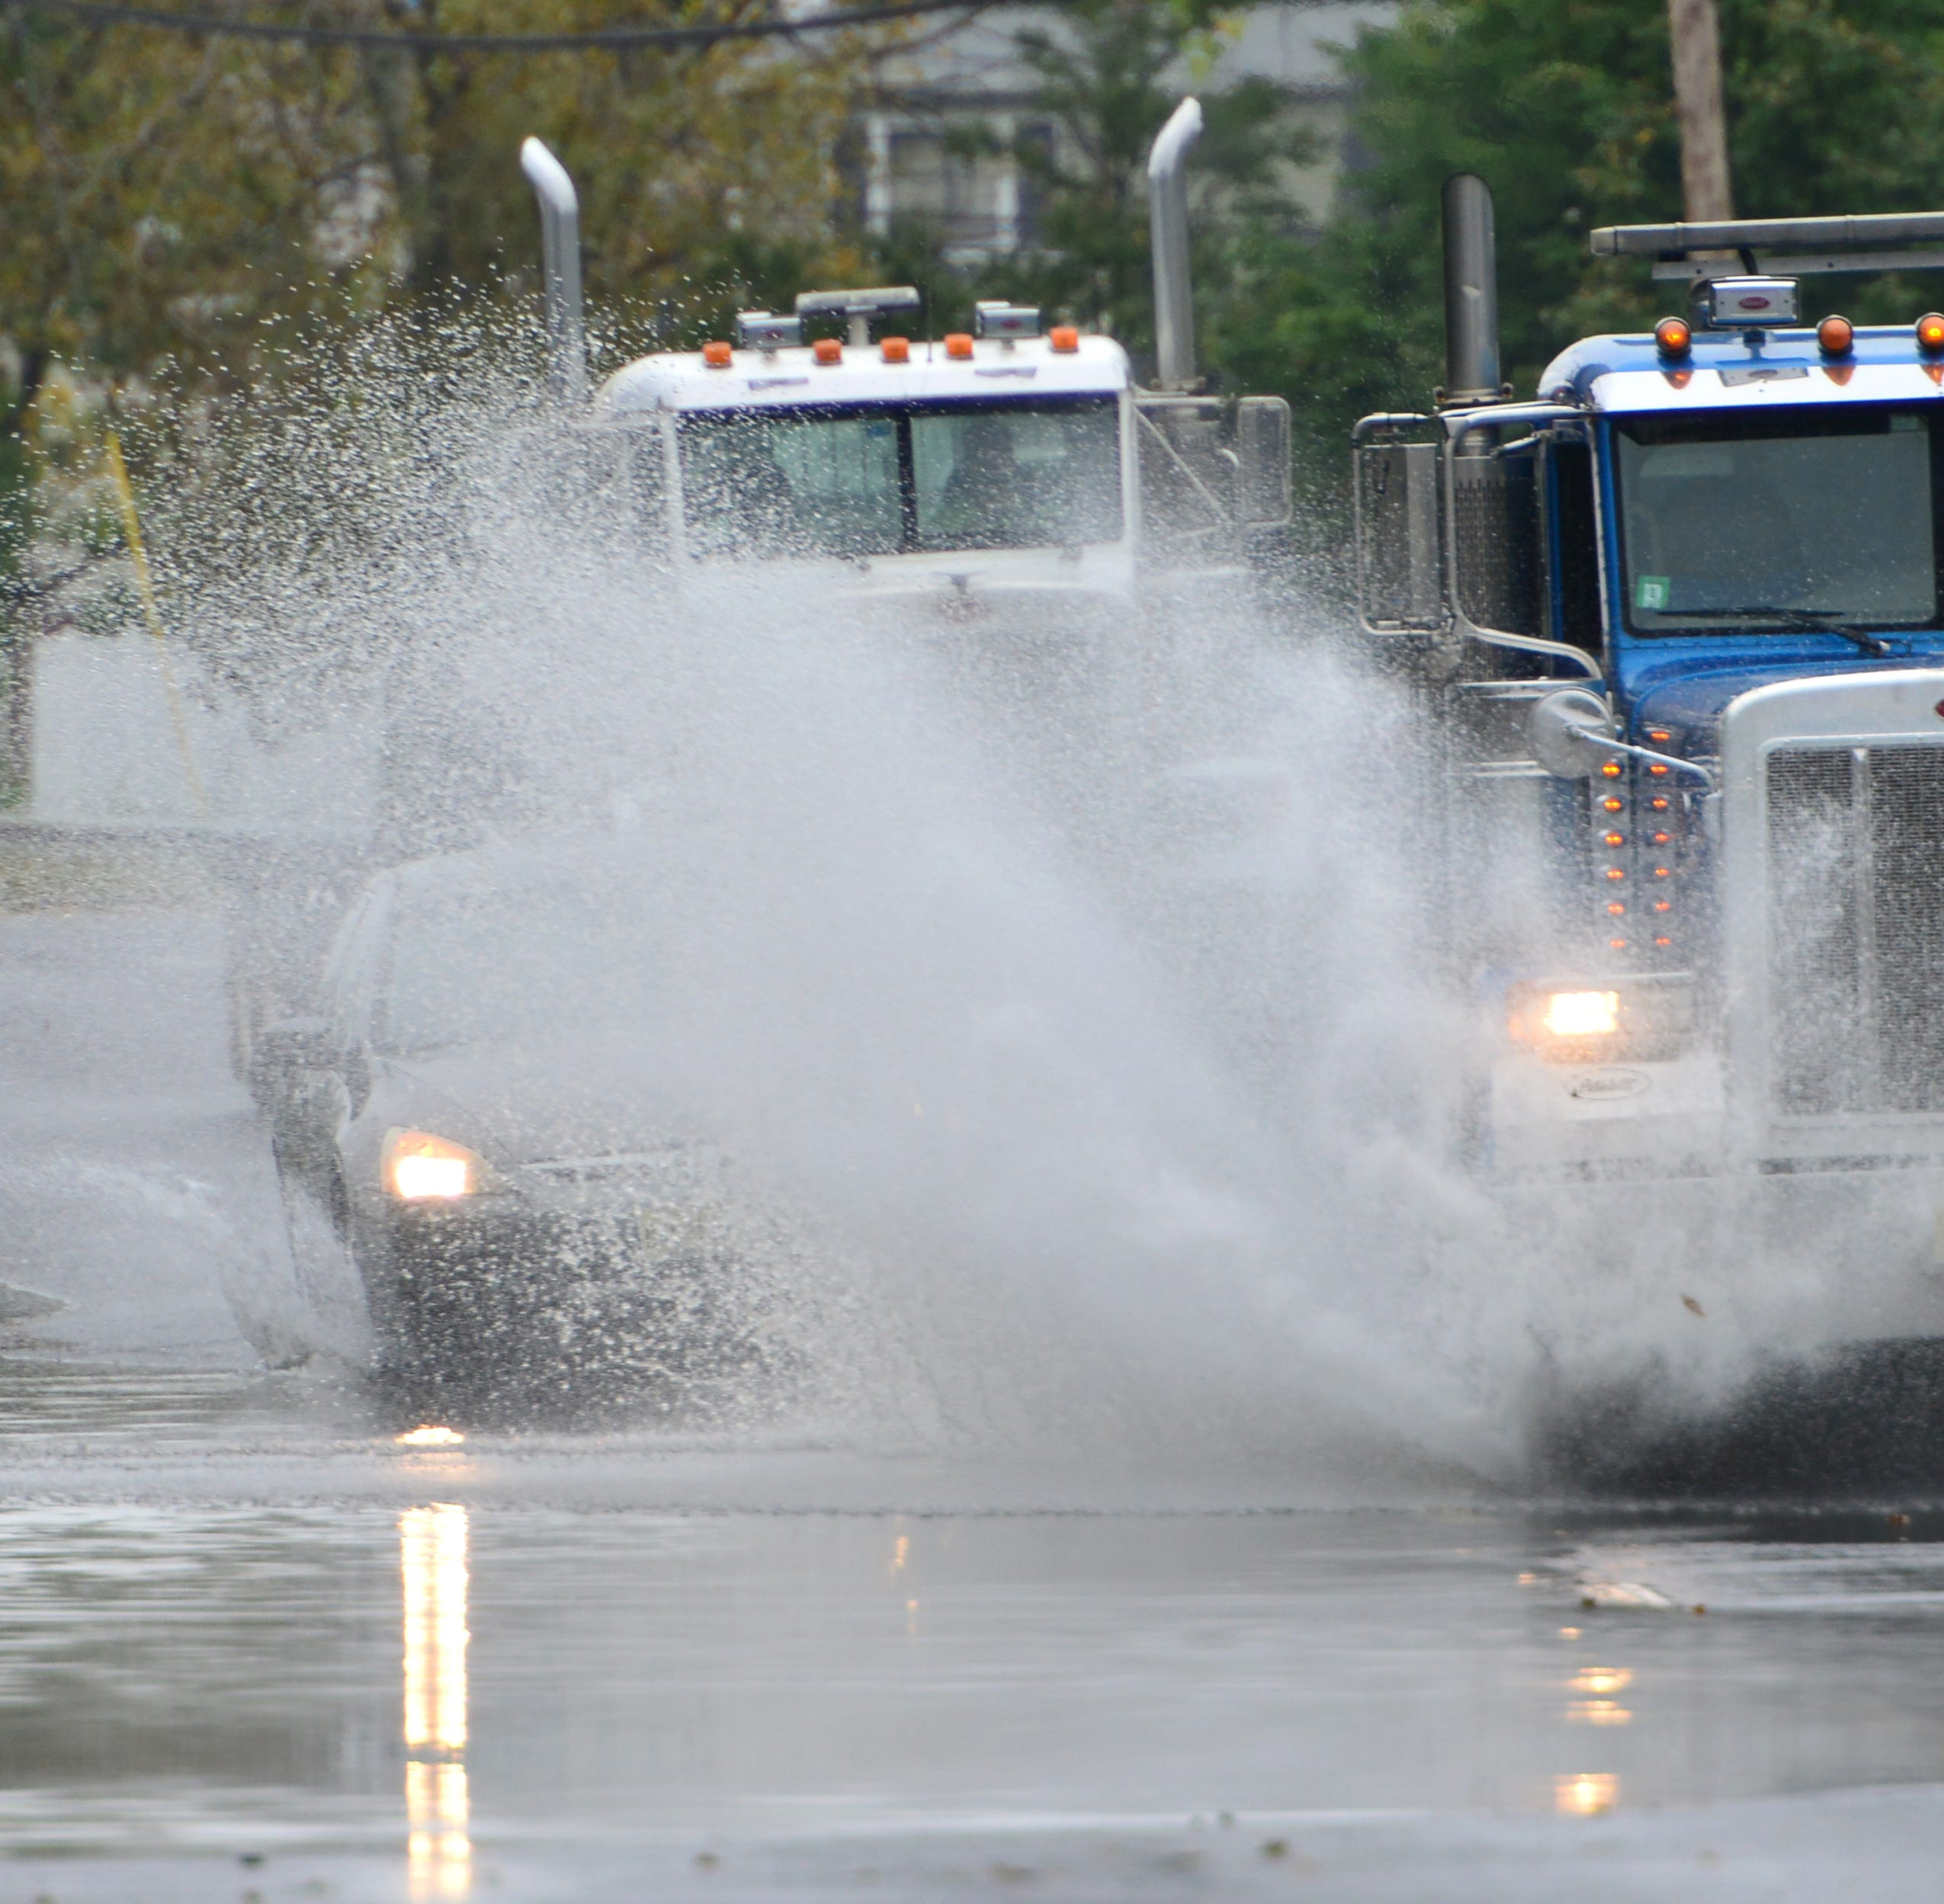 Rainy forecast brings flood concerns in New Jersey